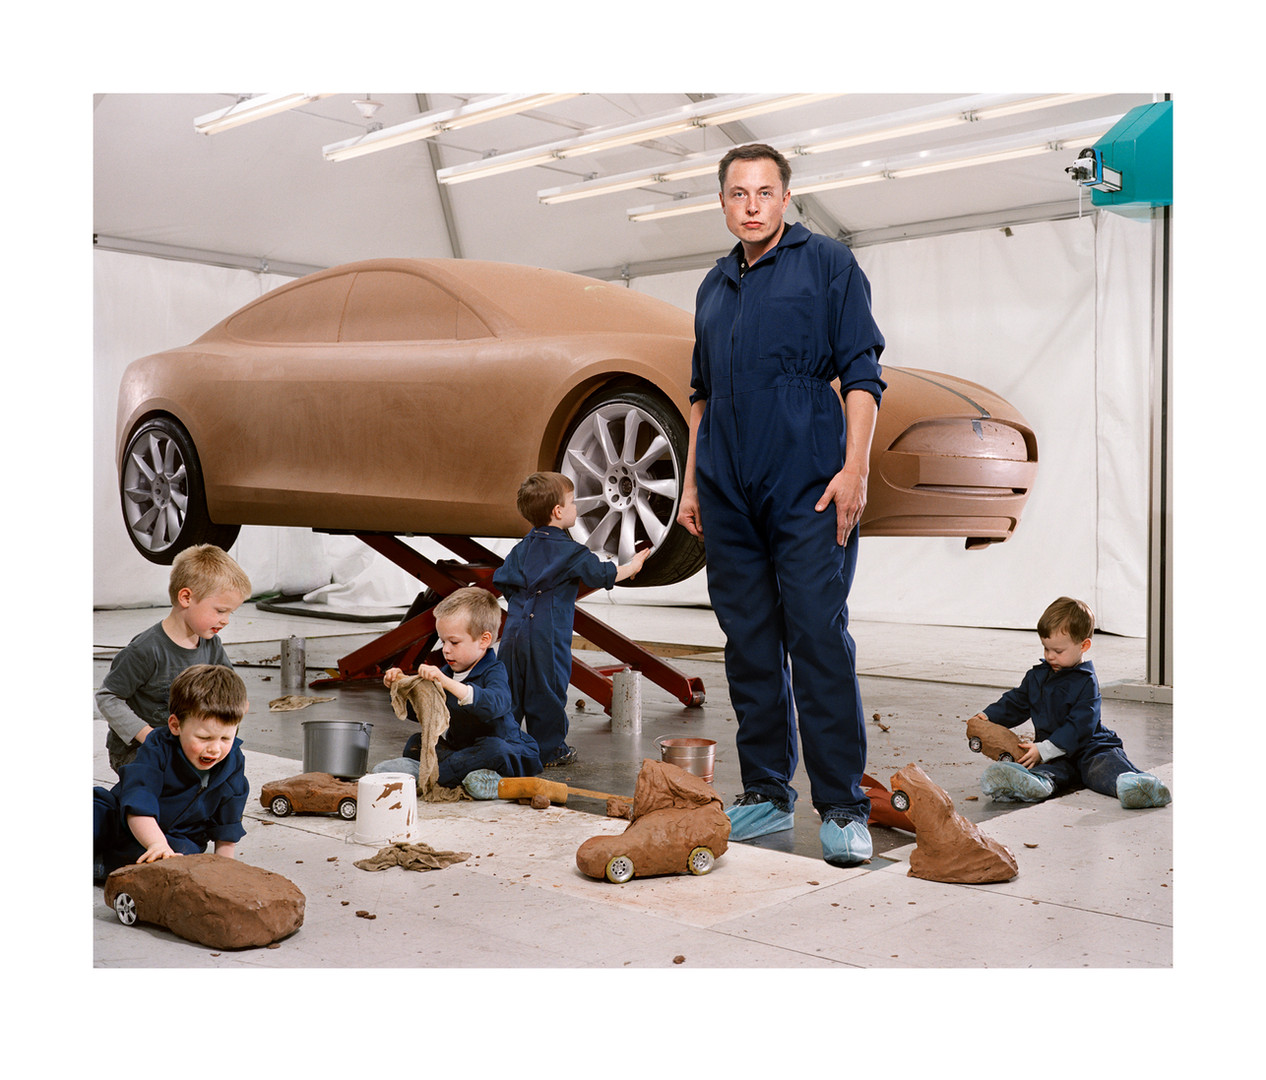 Elon Musk with his Sons, Hawthorne, California | From the series Portrait | Martin Schoeller | 2009